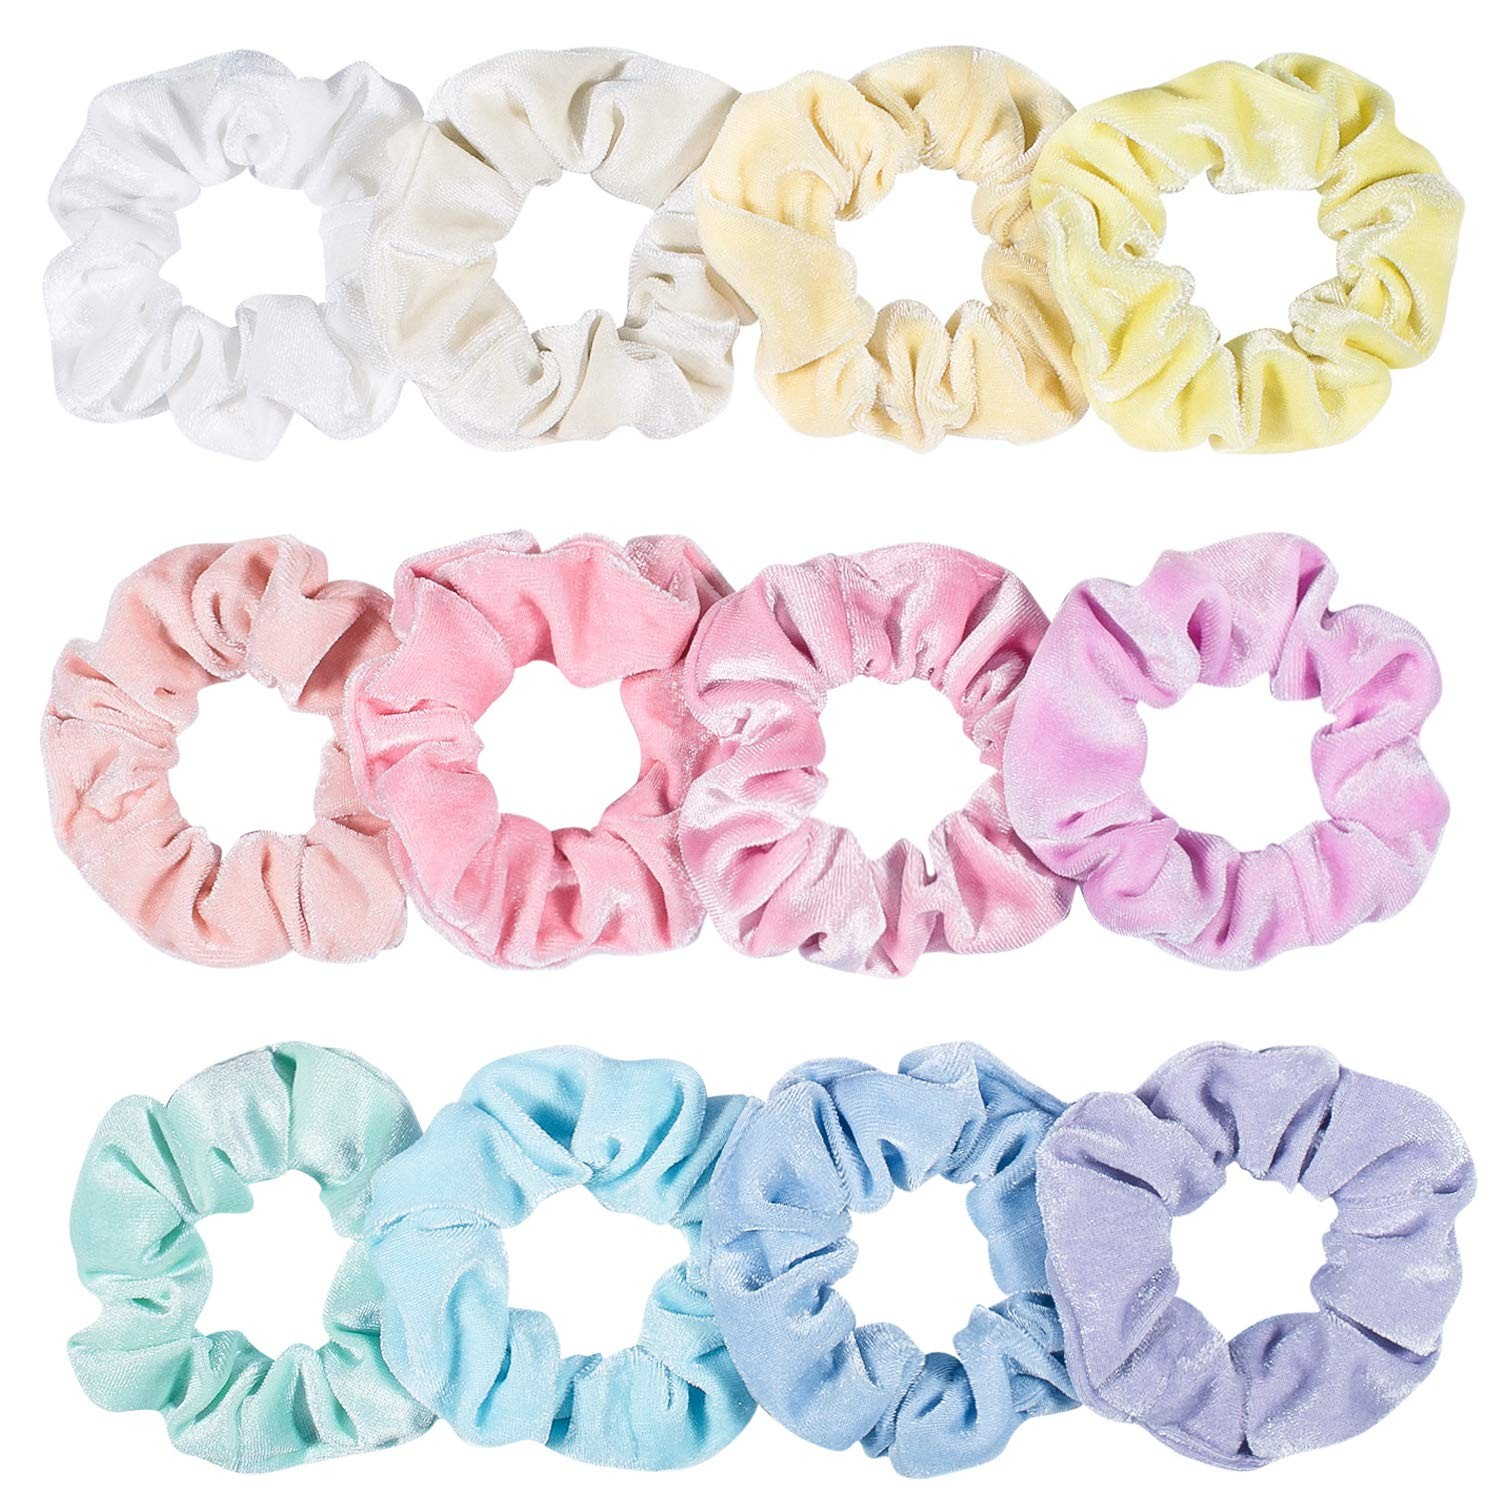 20 PCS Vintage Hair Scrunchies Stretchy Velvet Scrunchie Pack Women Elastic Hair Bands Girl Headwear Plain Rubber Hair Ties